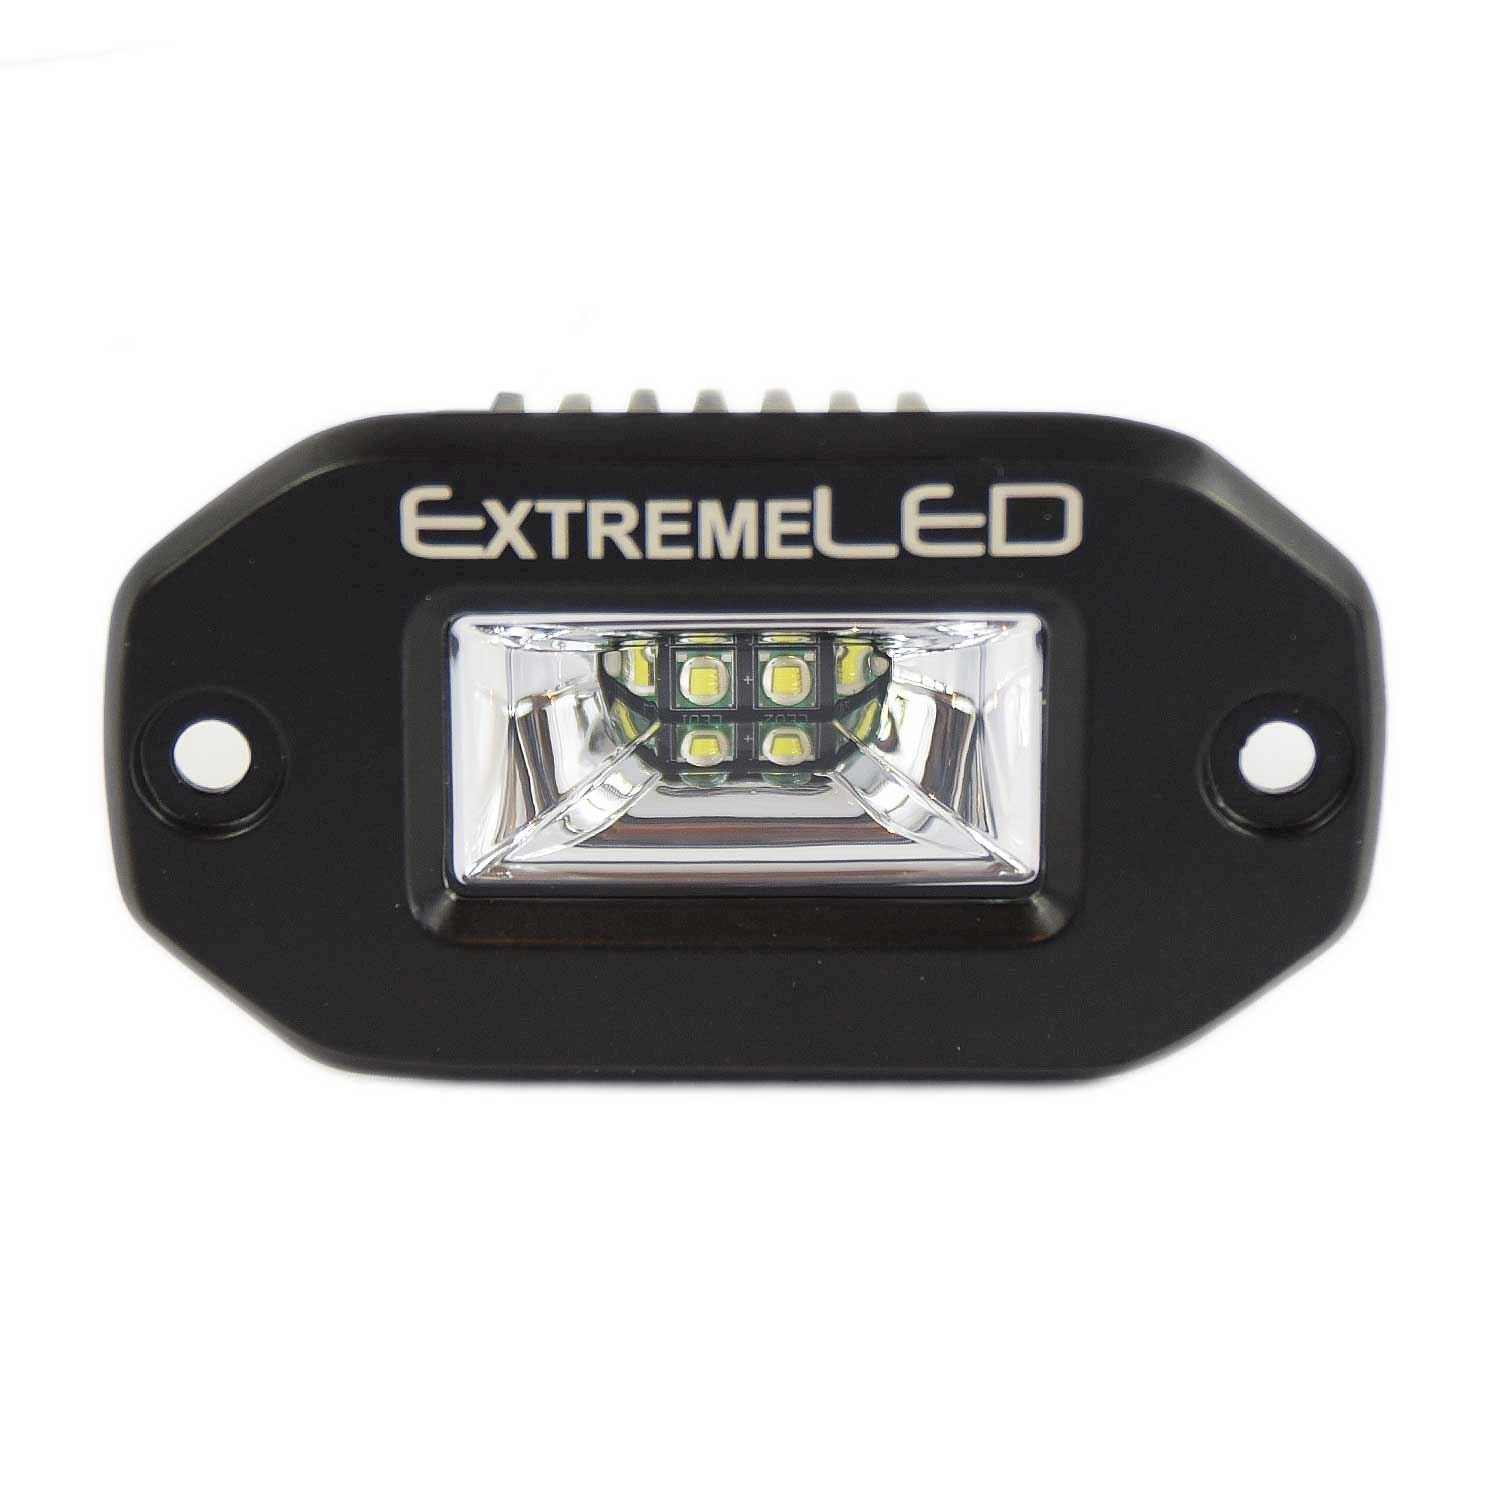 "Extreme LED 3"" Flush Mount LED Reverse Light Kit"